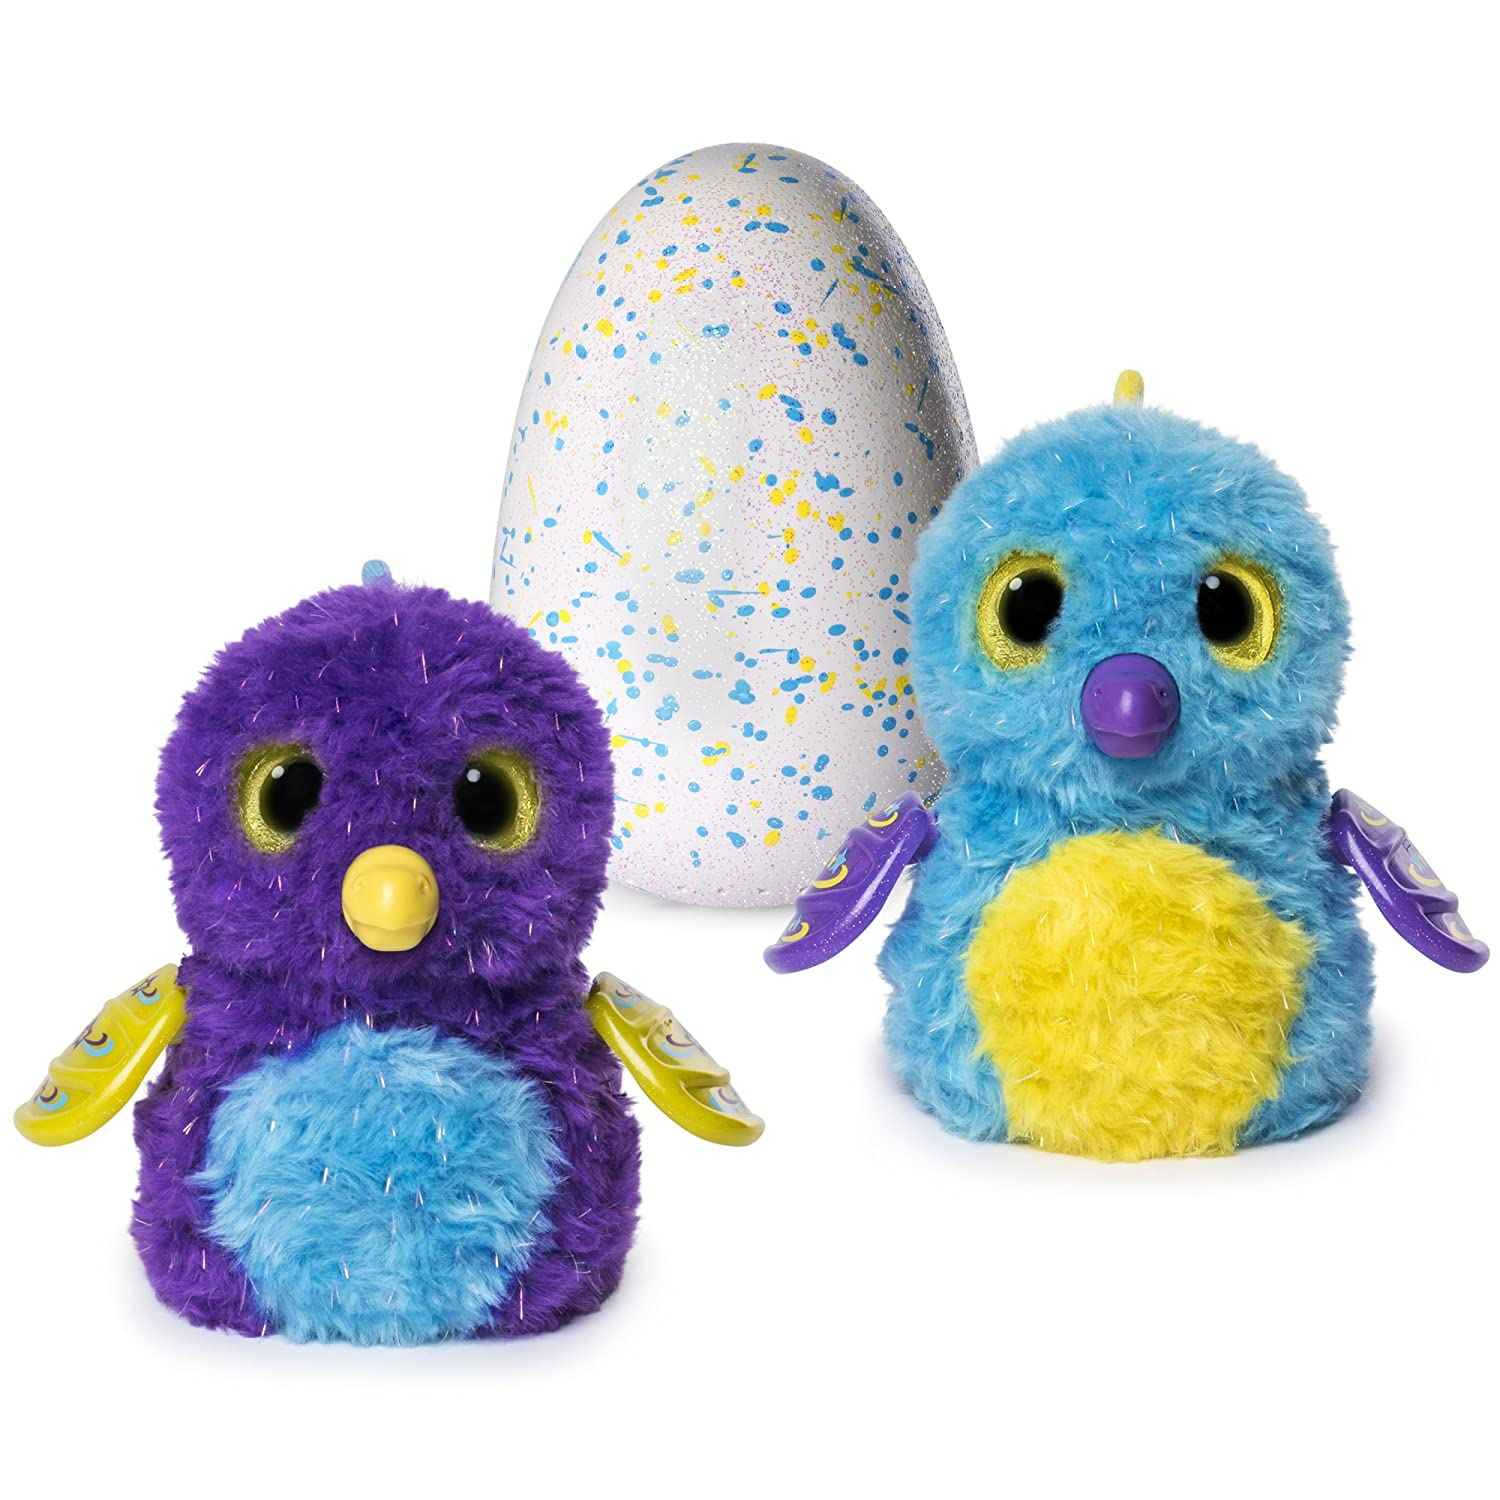 $59.97(was $79.99) Hatchimals Glittering Garden – Hatching Egg and Interactive Shimmering Draggle by Spin Master